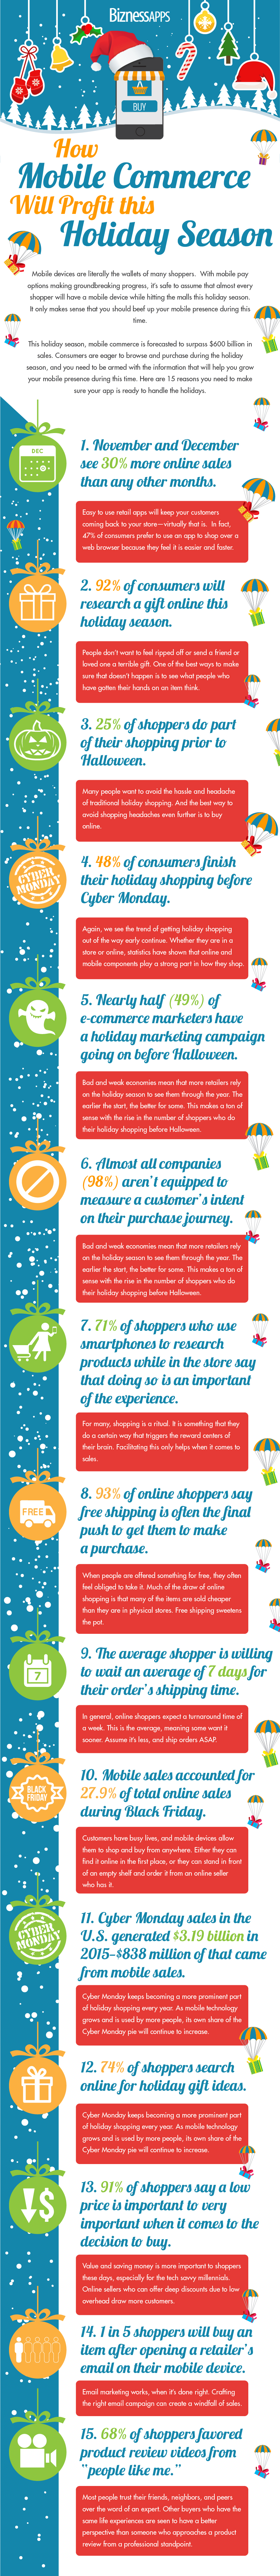 Bizapps Holiday Infographic